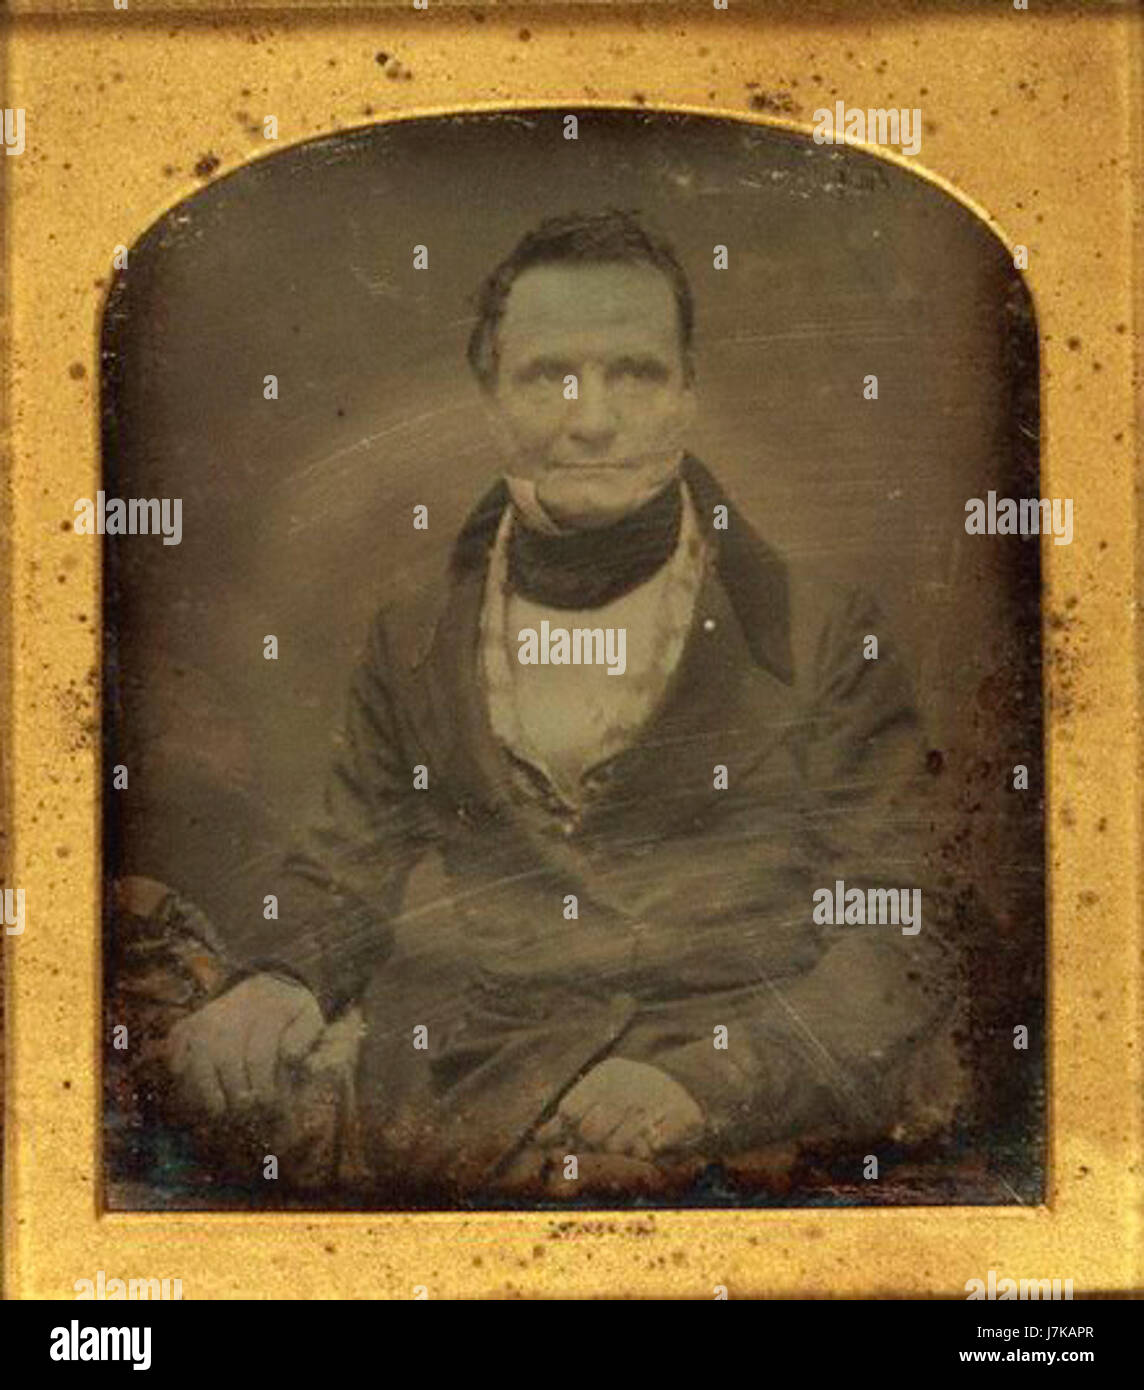 Charles Babbage by Antoine Claudet - Stock Image